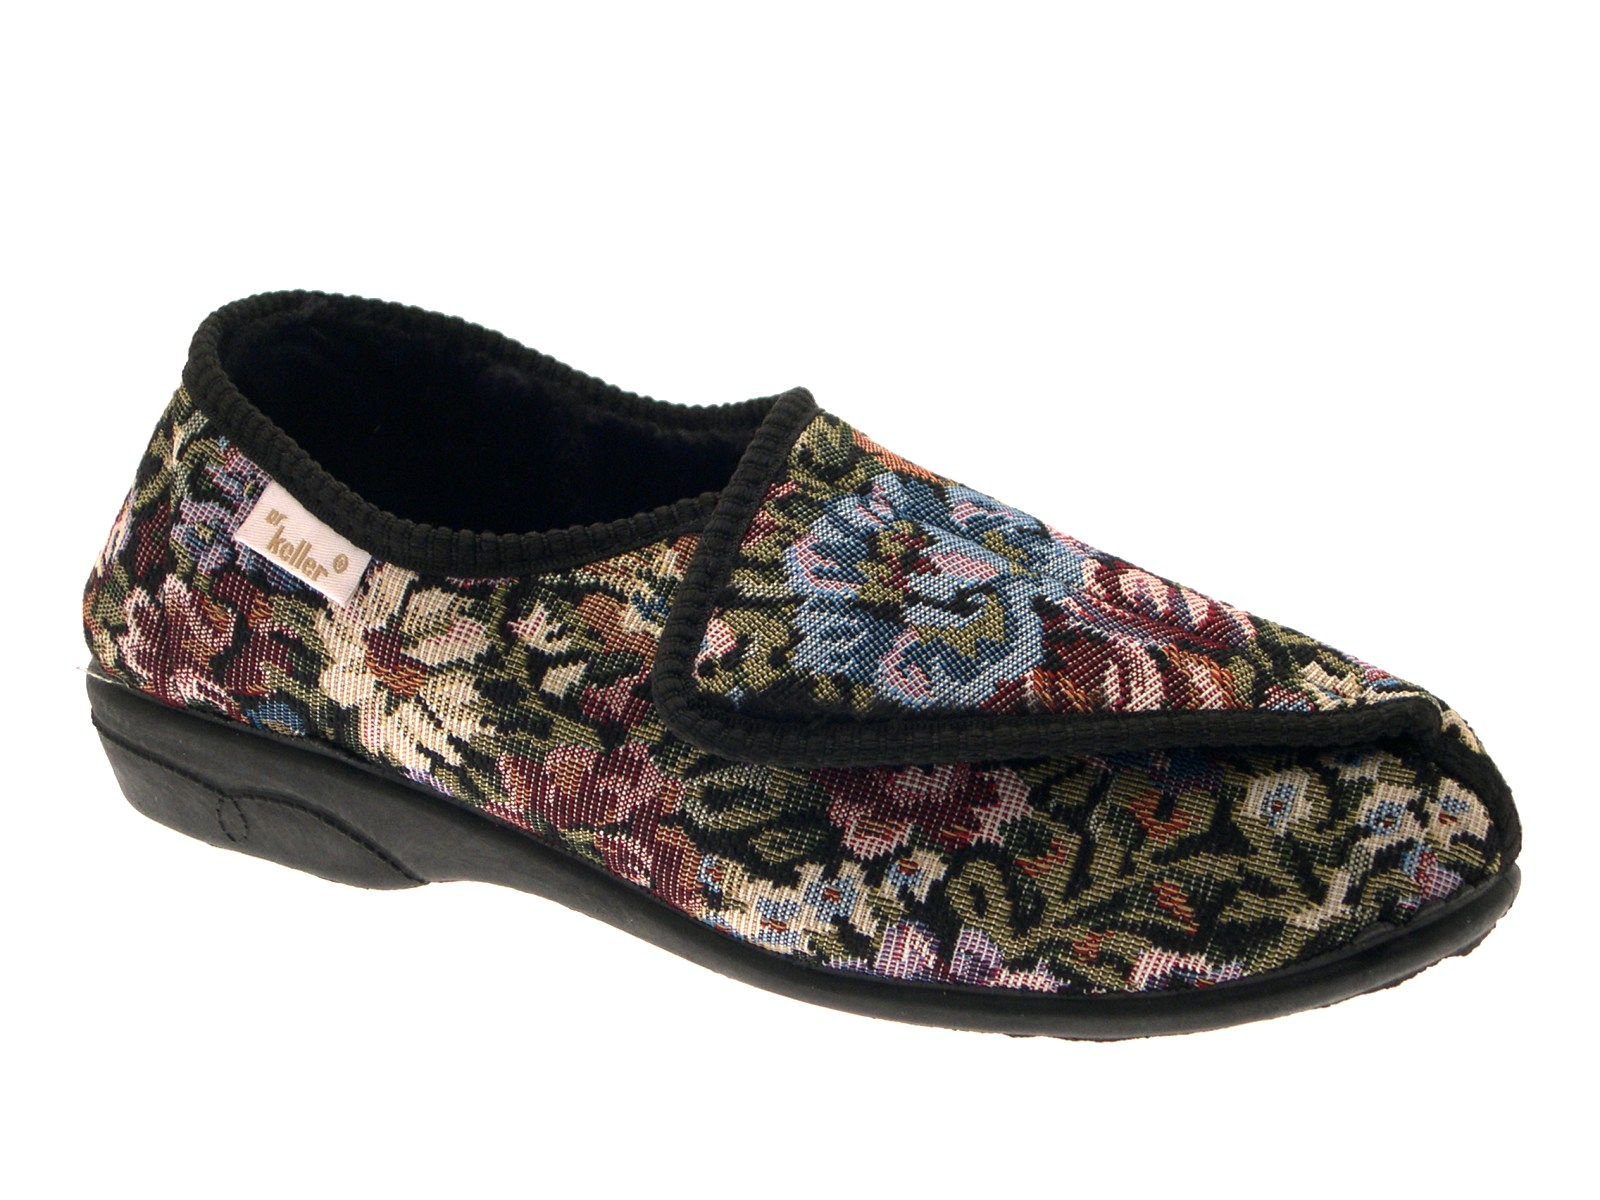 Dr Comfort Diabetic Shoes Uk